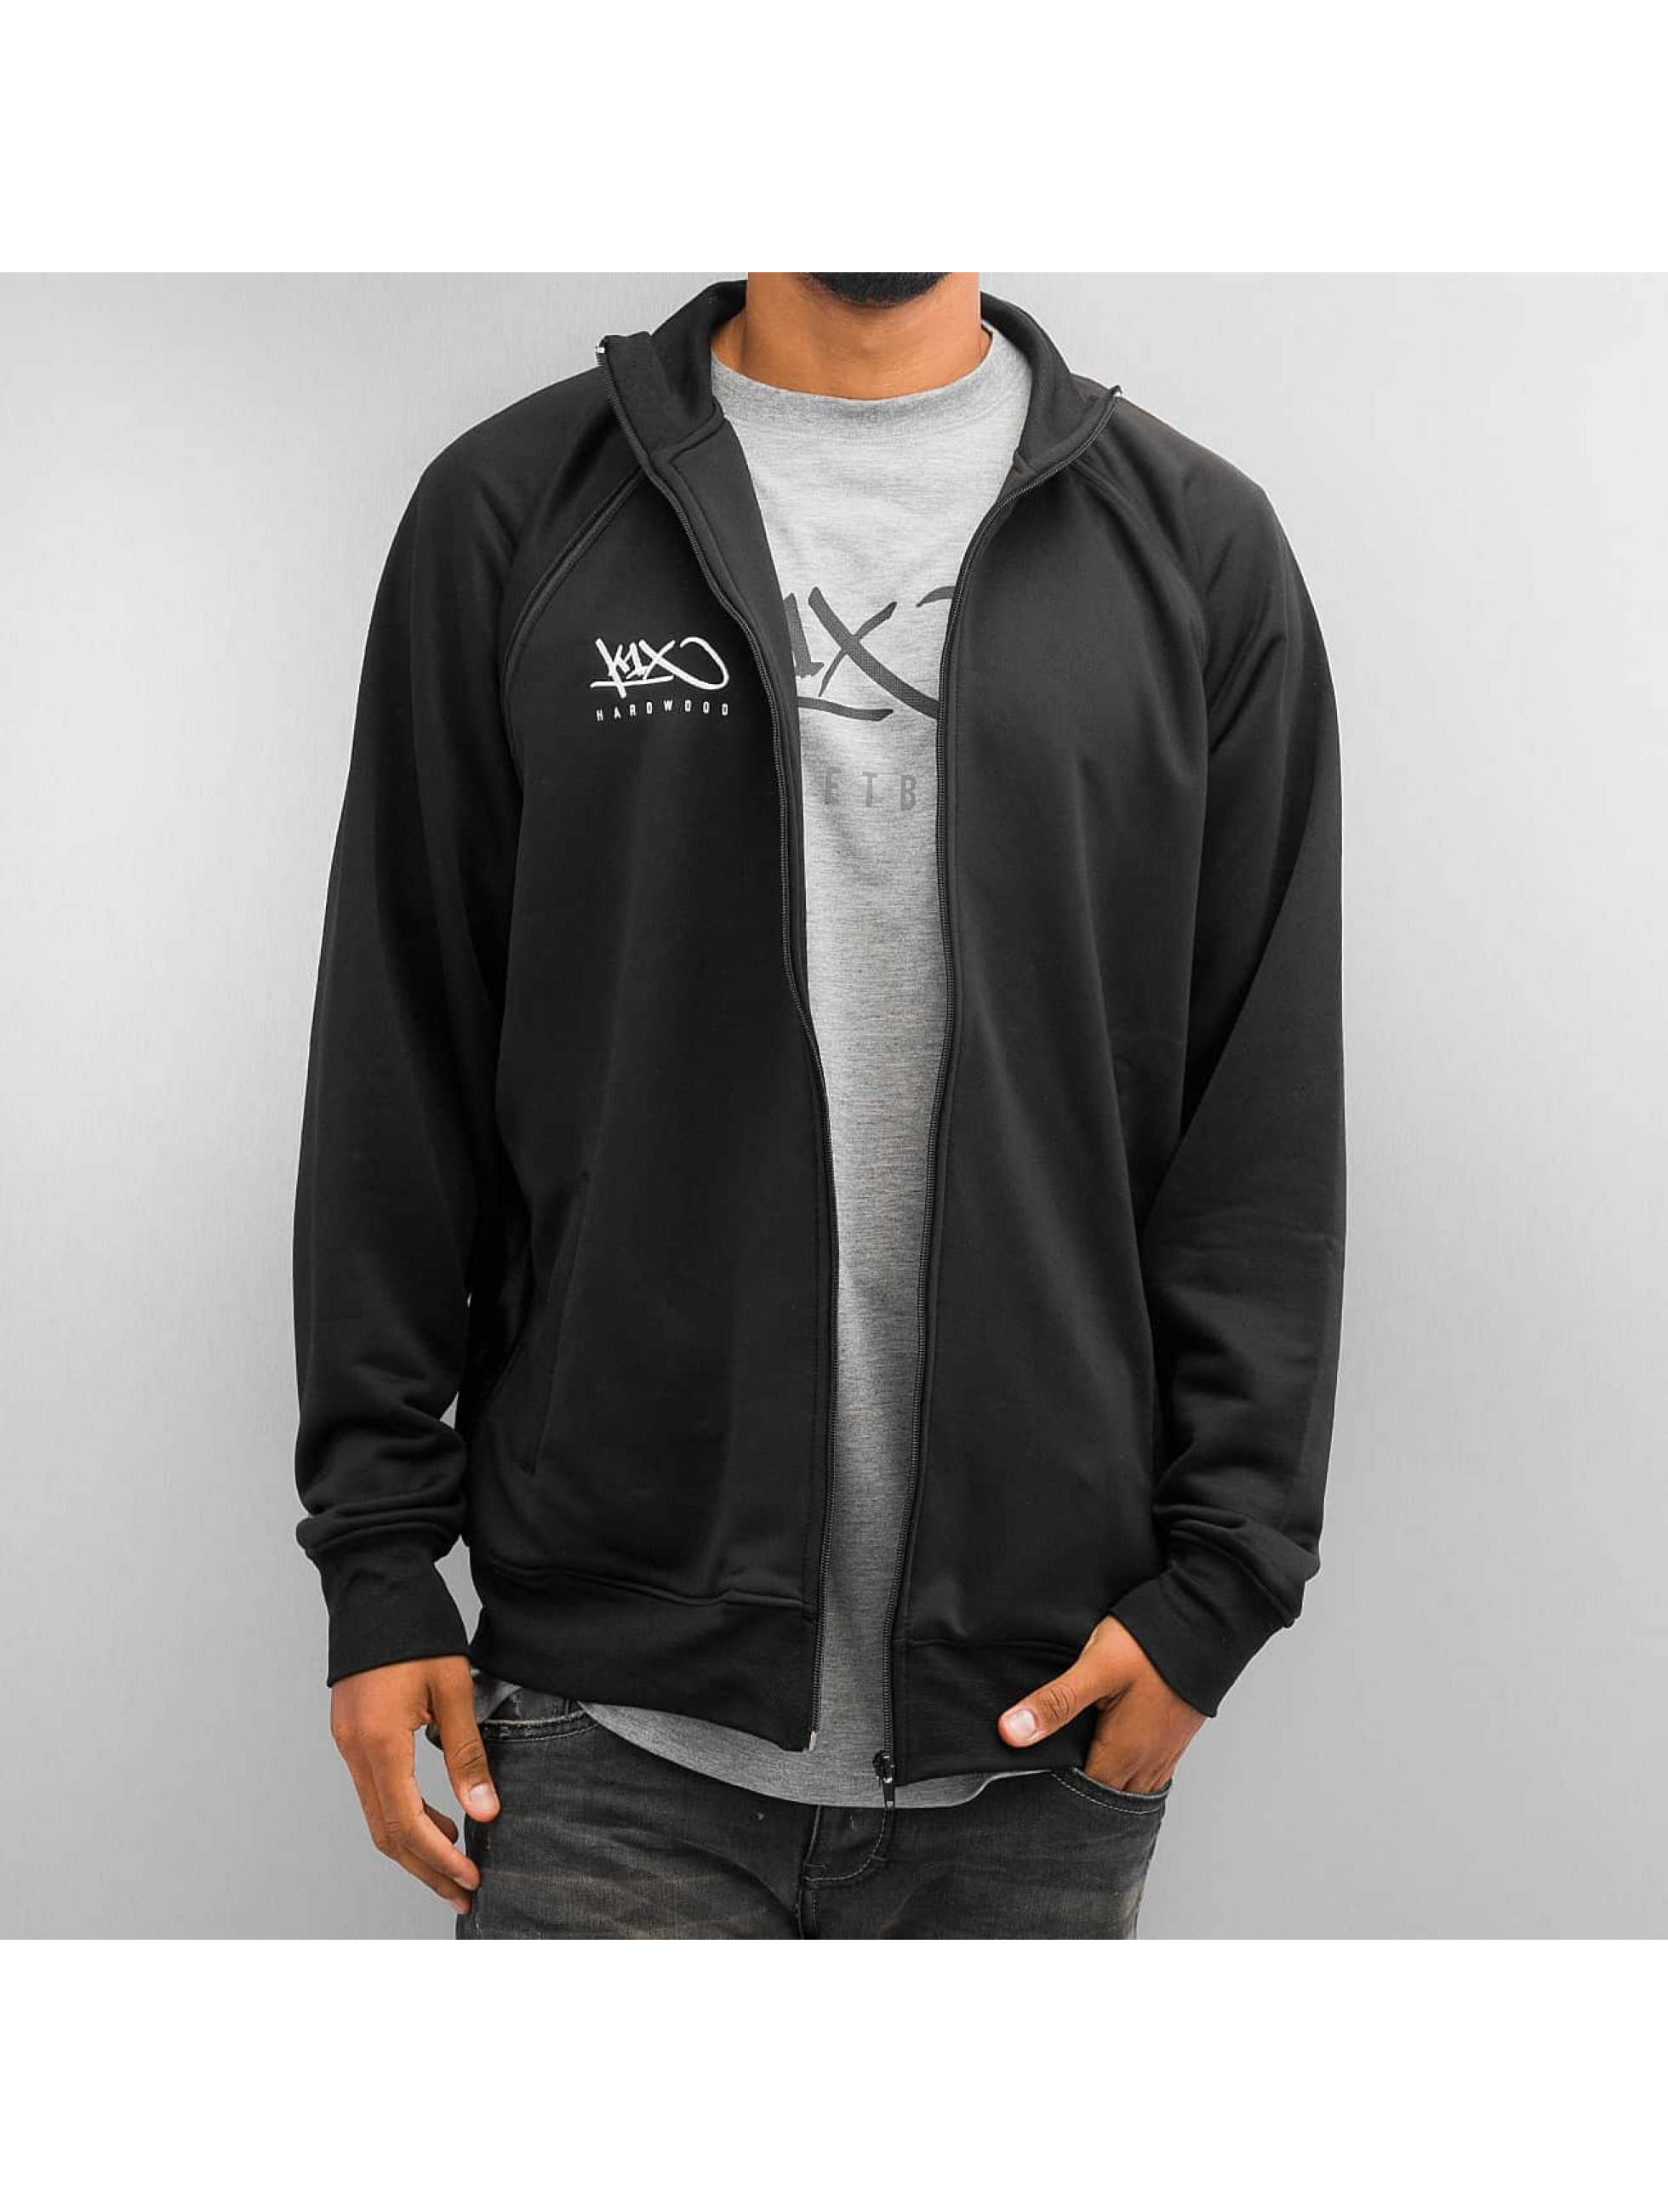 K1X Lightweight Jacket Hardwood Intimidator Warm Up black